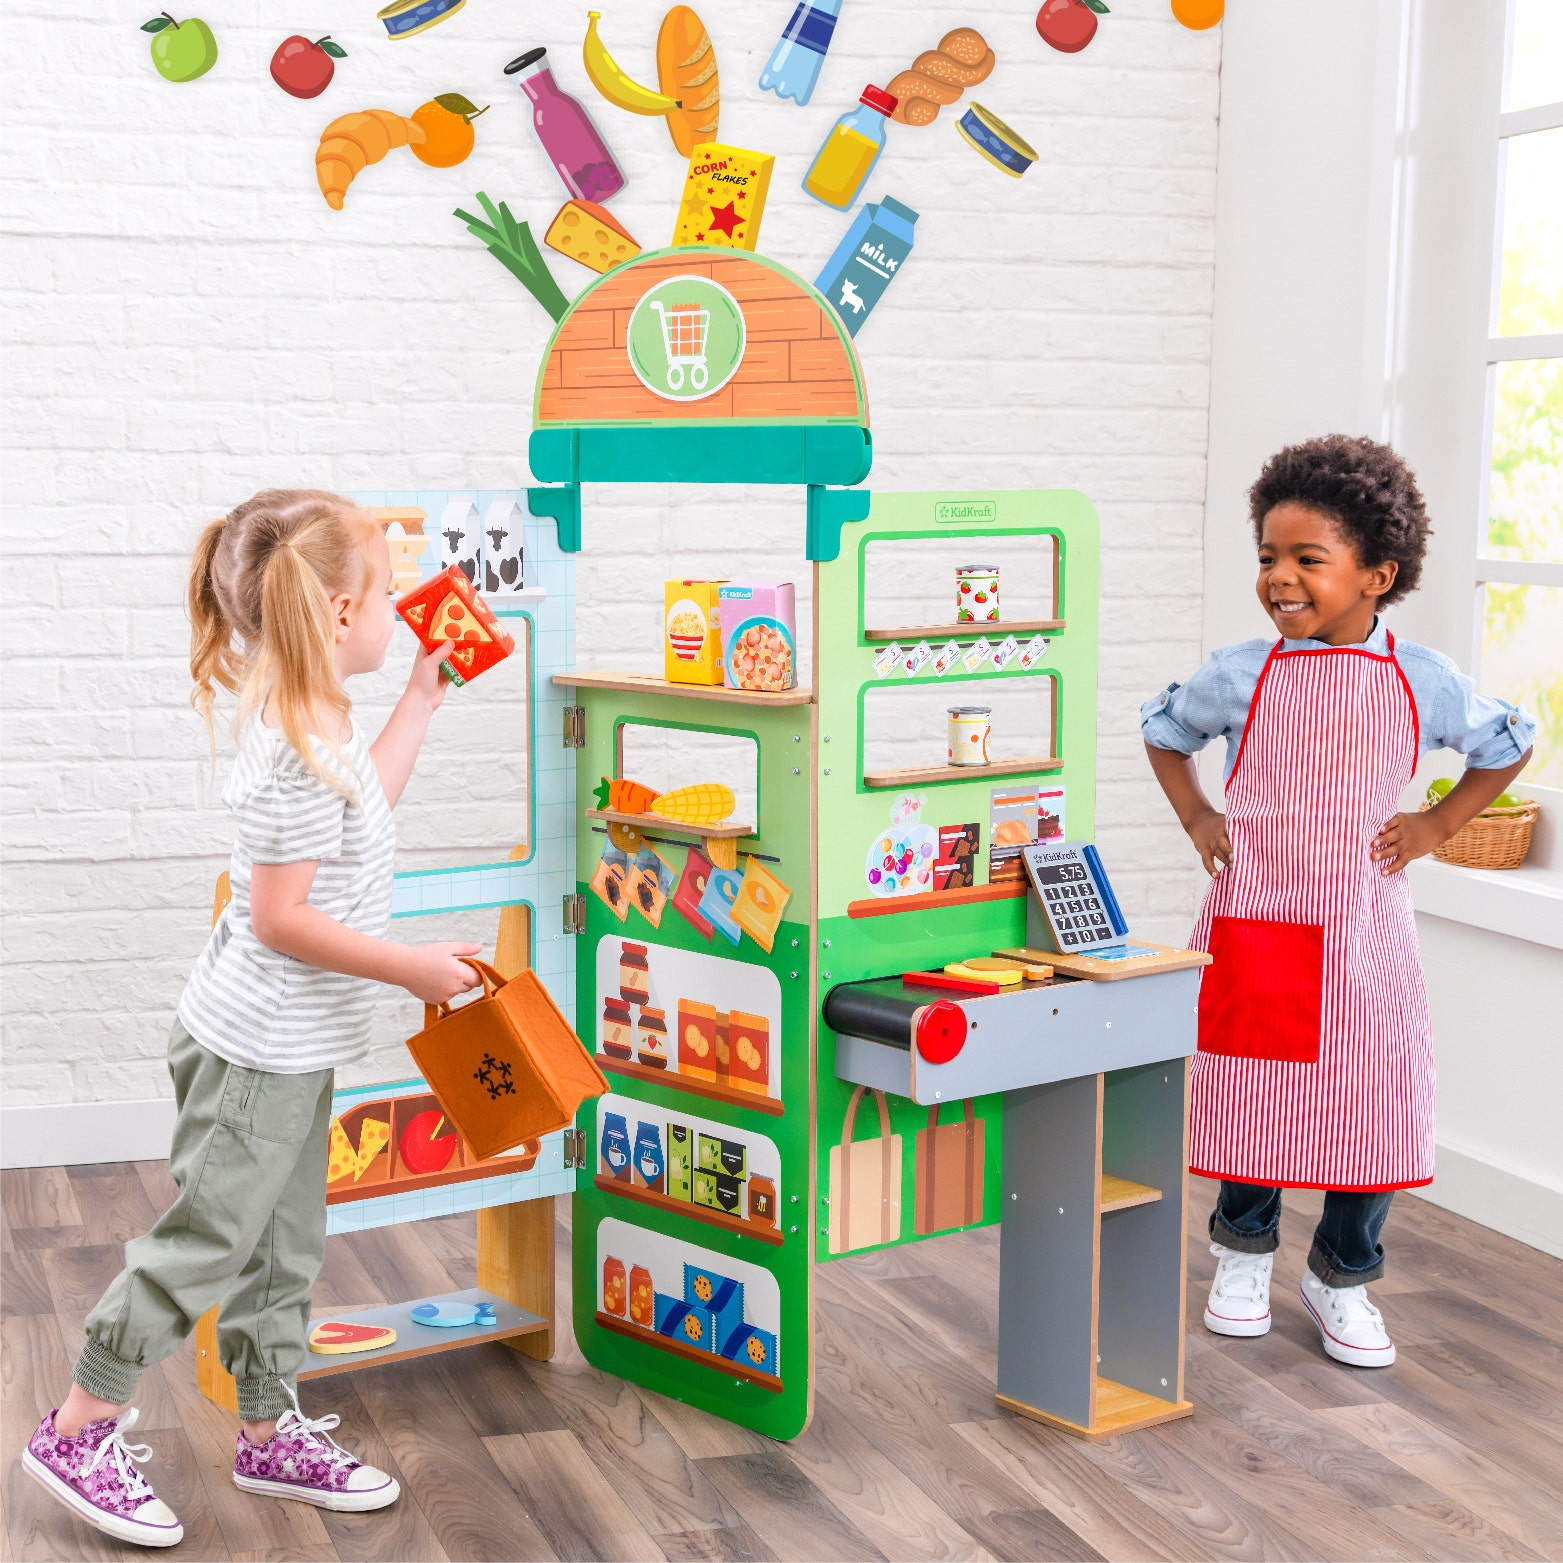 Mother and girl playing with KidKraft Grocery Store Pop Up